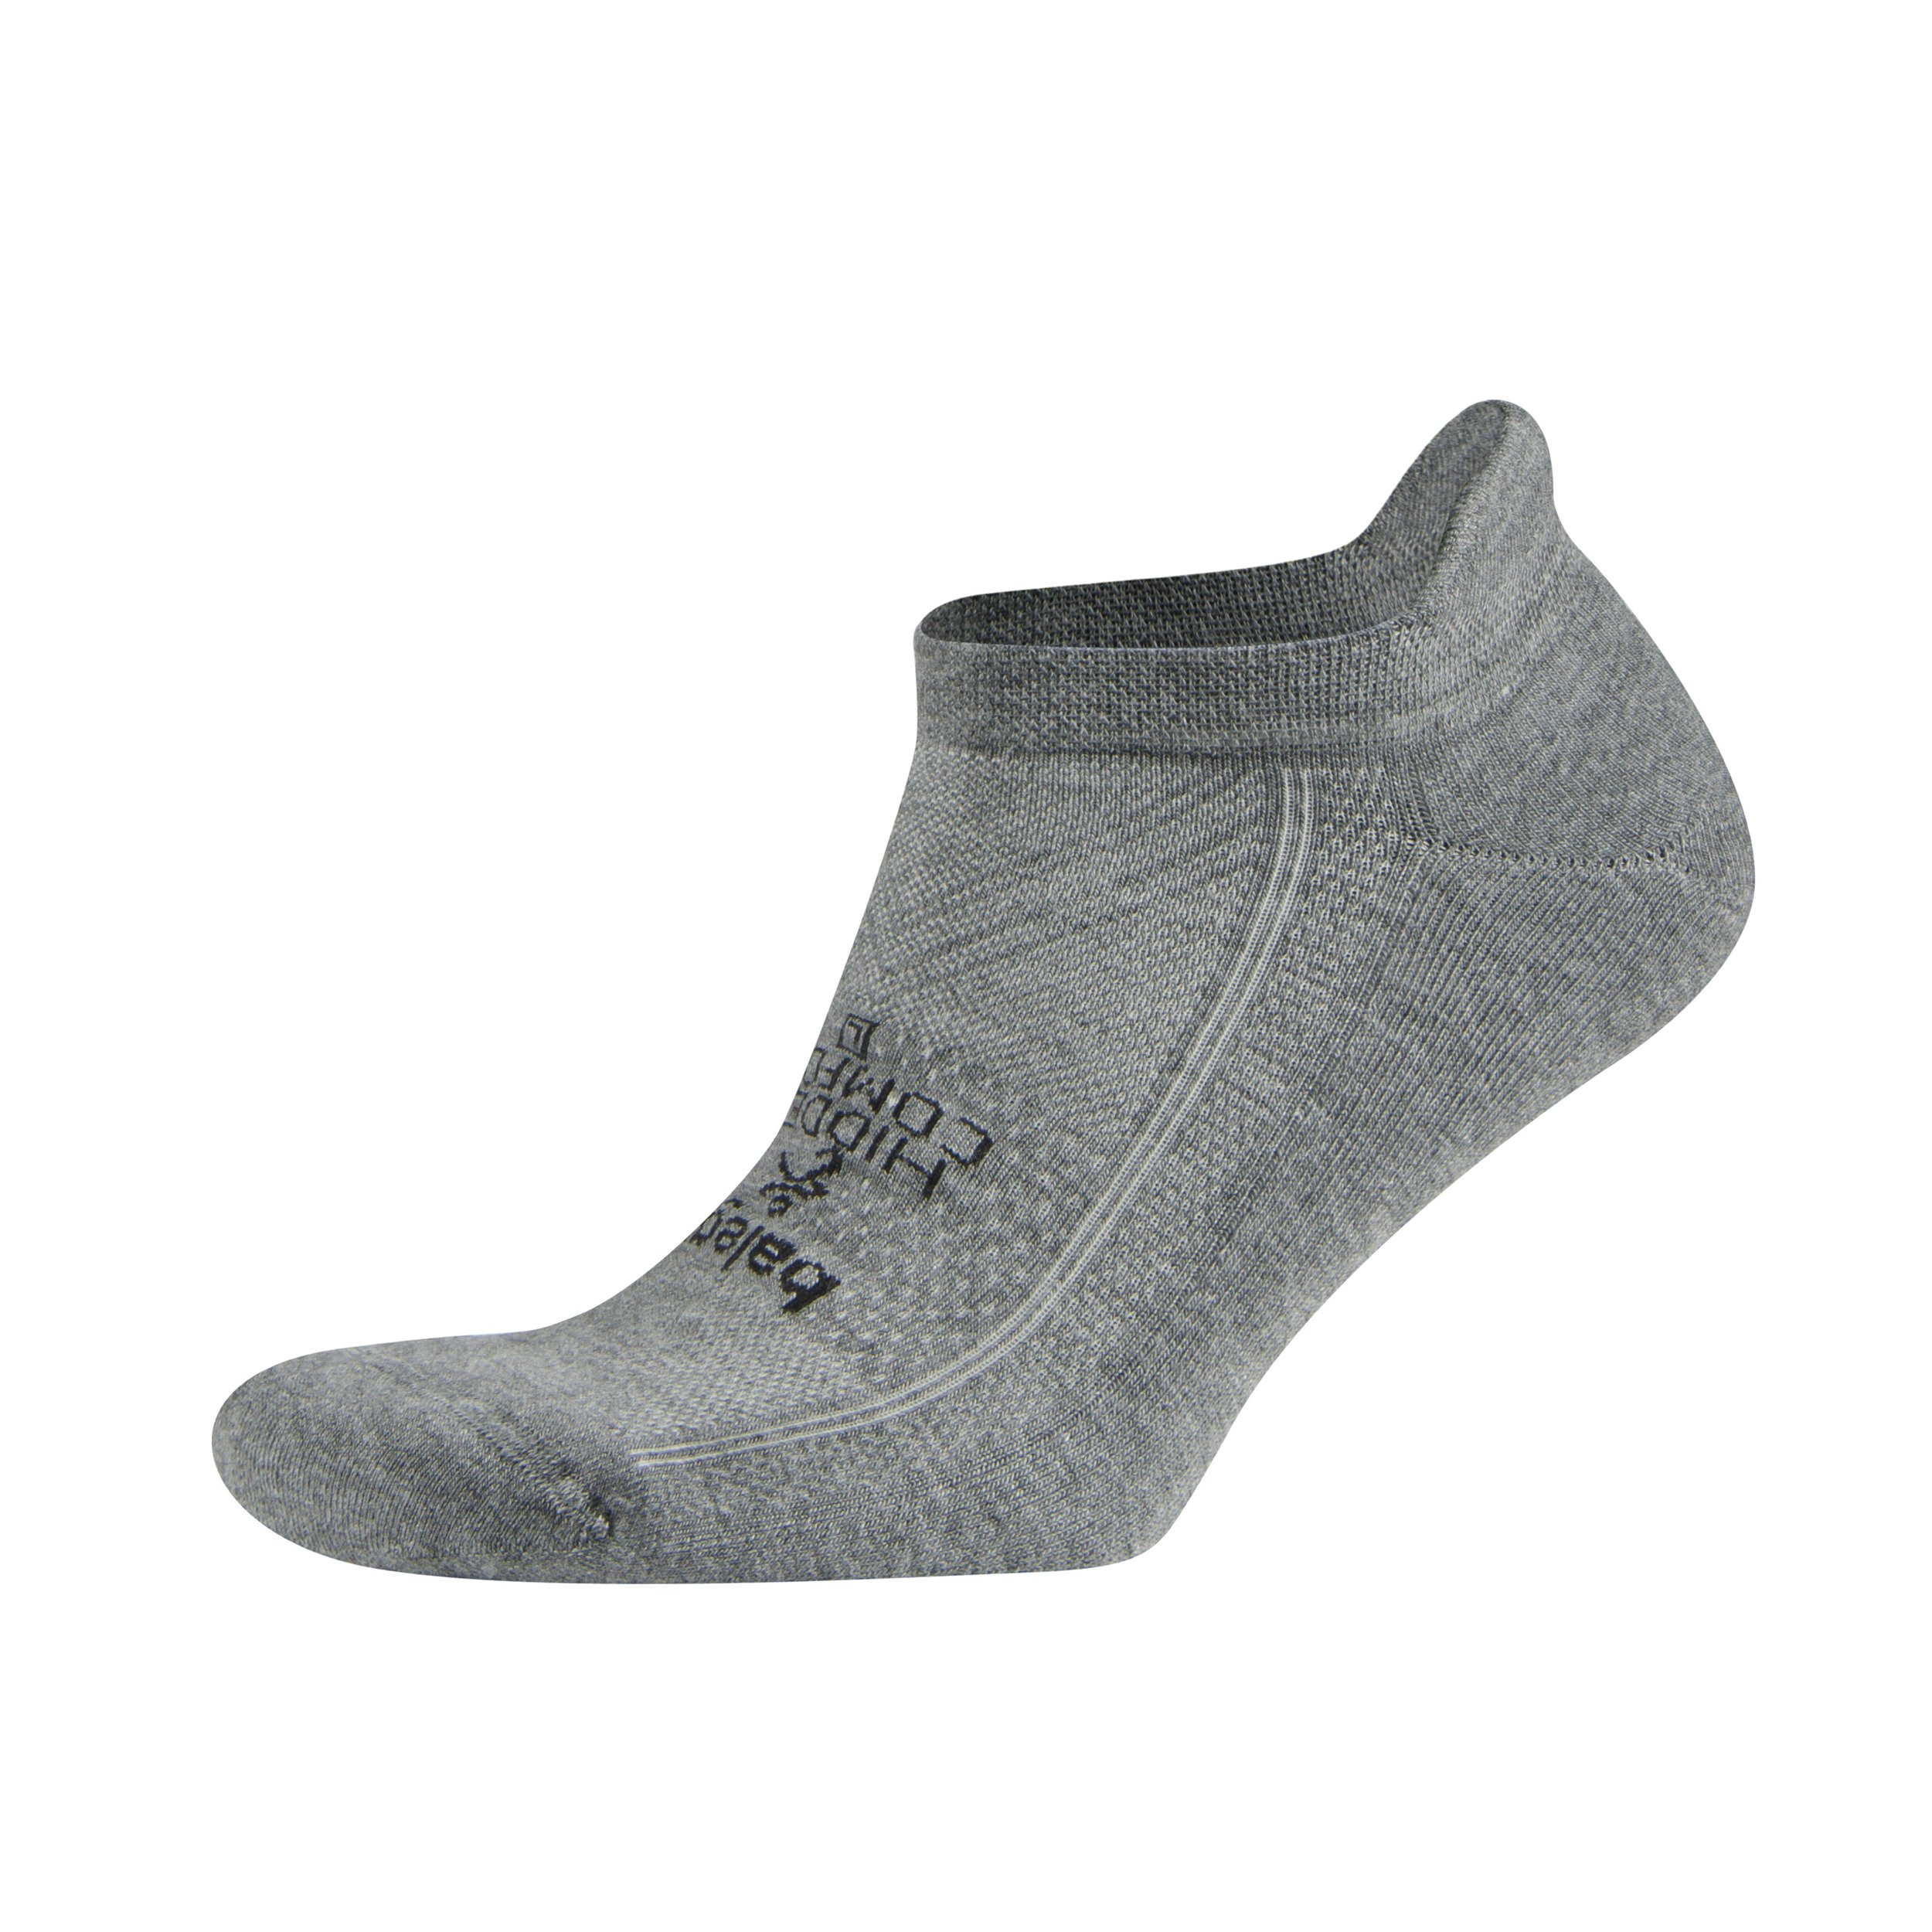 Balega Hidden Comfort No-Show Running Socks for Men and Women (1 Pair), Charcoal, Large